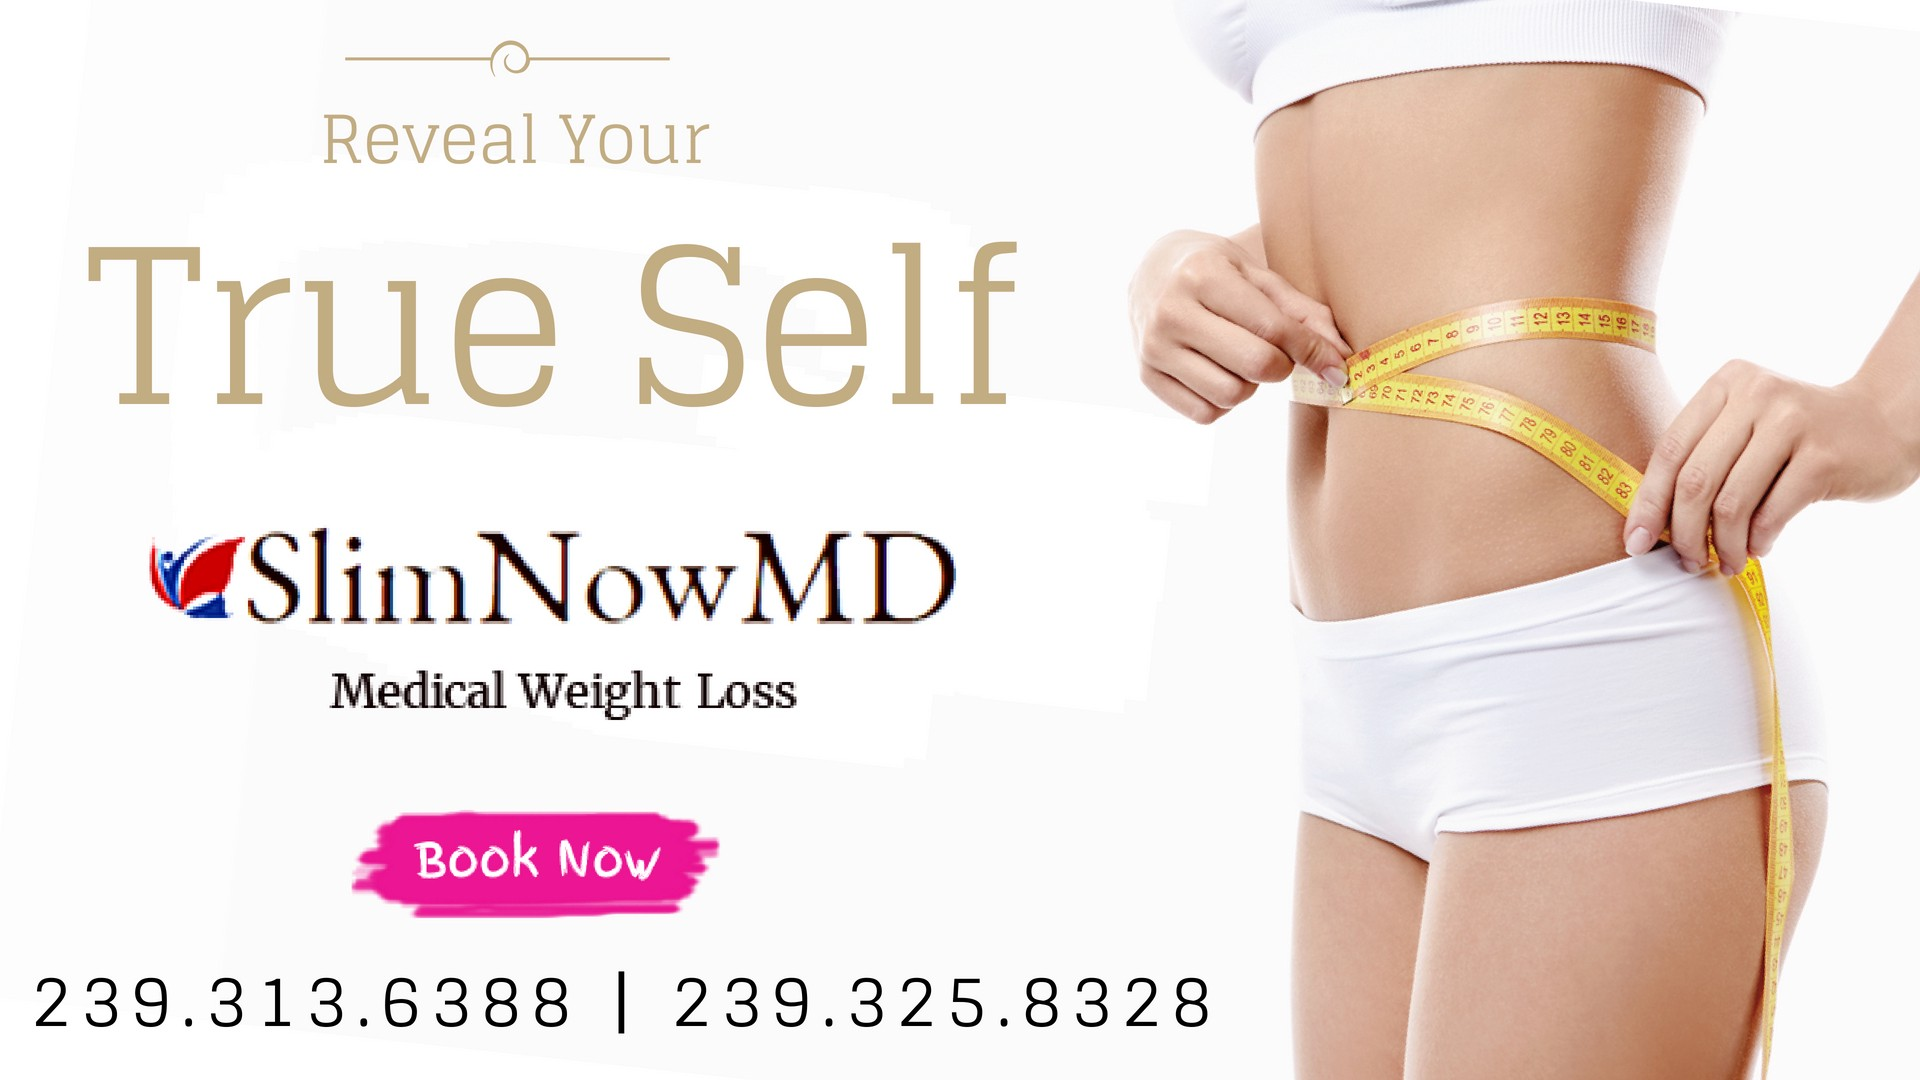 Reduce Excess Body Weight With Laser Liposuction By Slimnow Md Medium